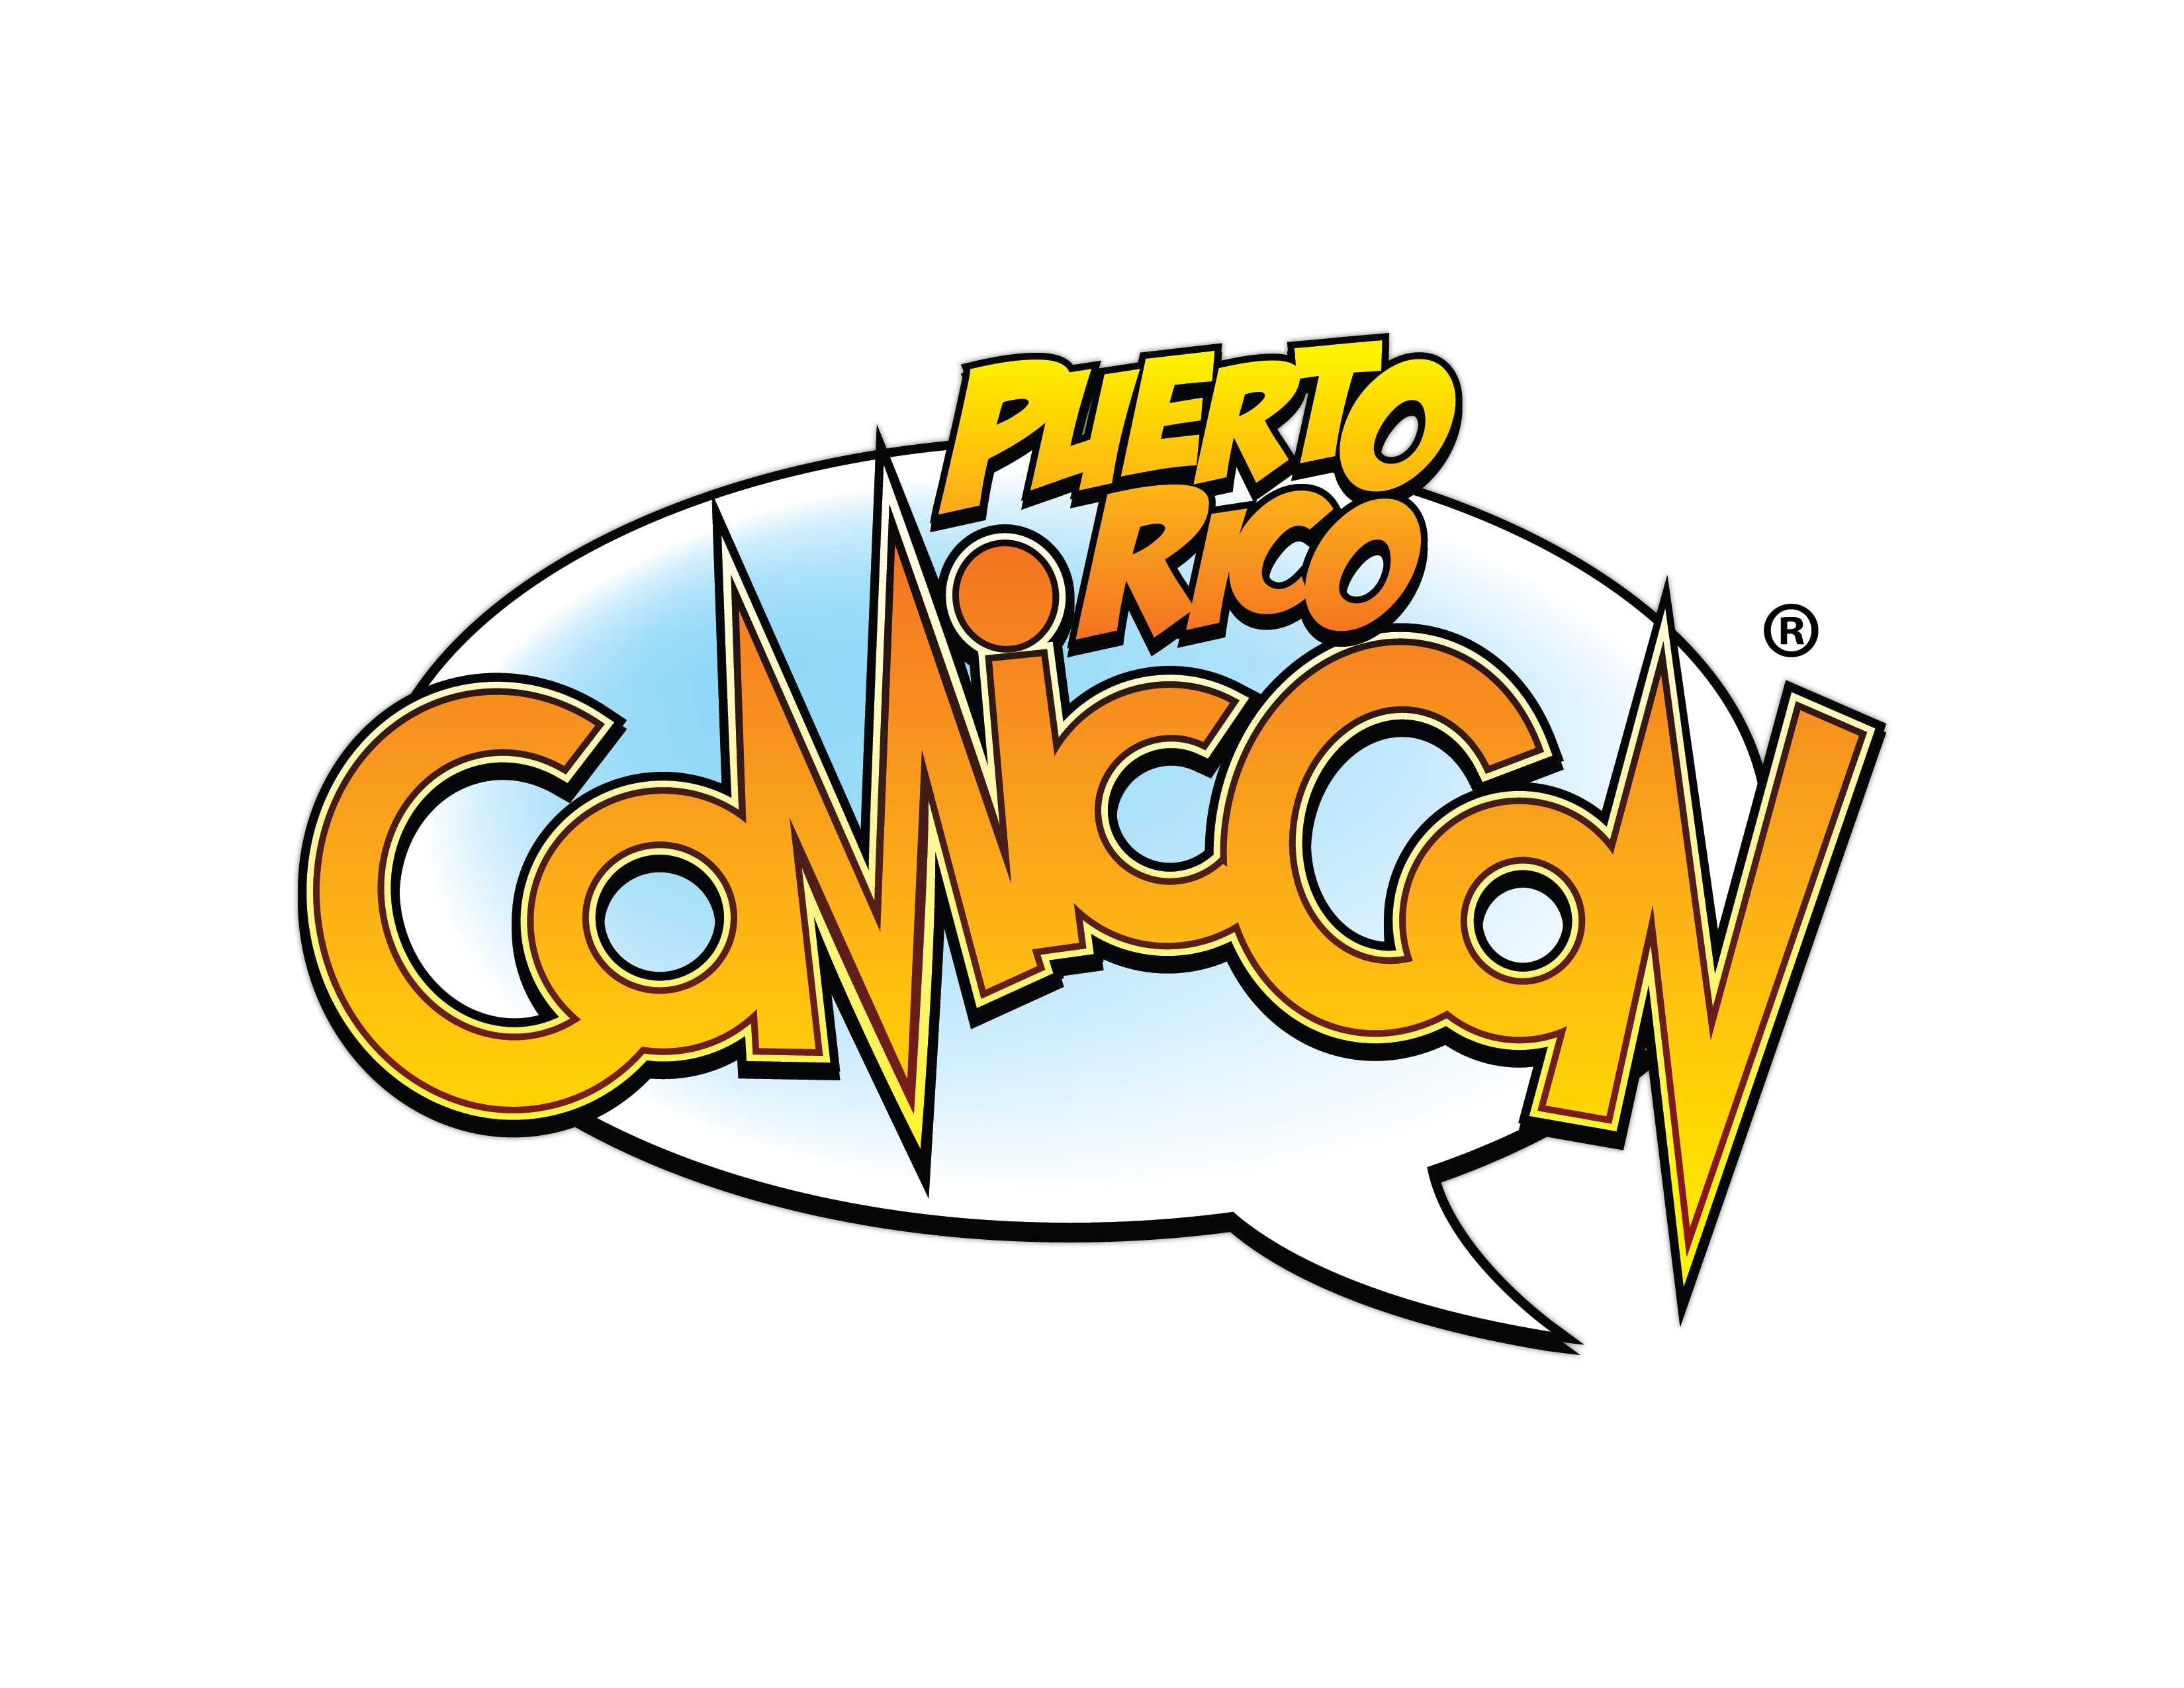 Coupon book clipart download Puerto Rico Comic Con - StackUp.org download